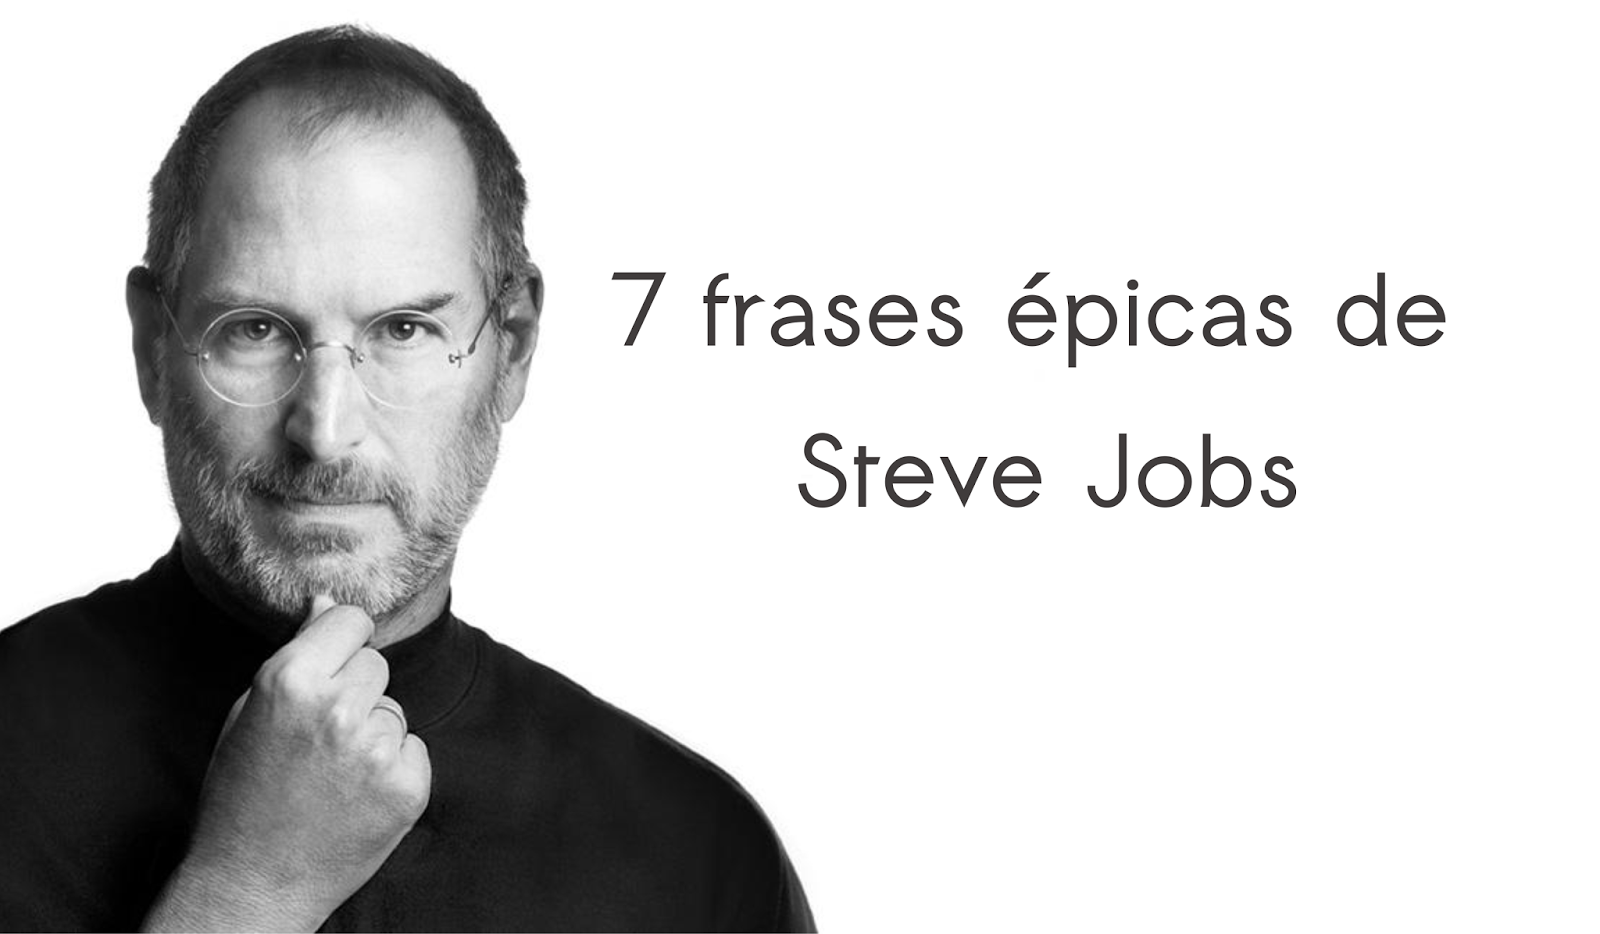 Bill Gates Quotes Wallpaper Hd 7 Frases Inspiradoras De Steve Jobs Para A Sua Carreira